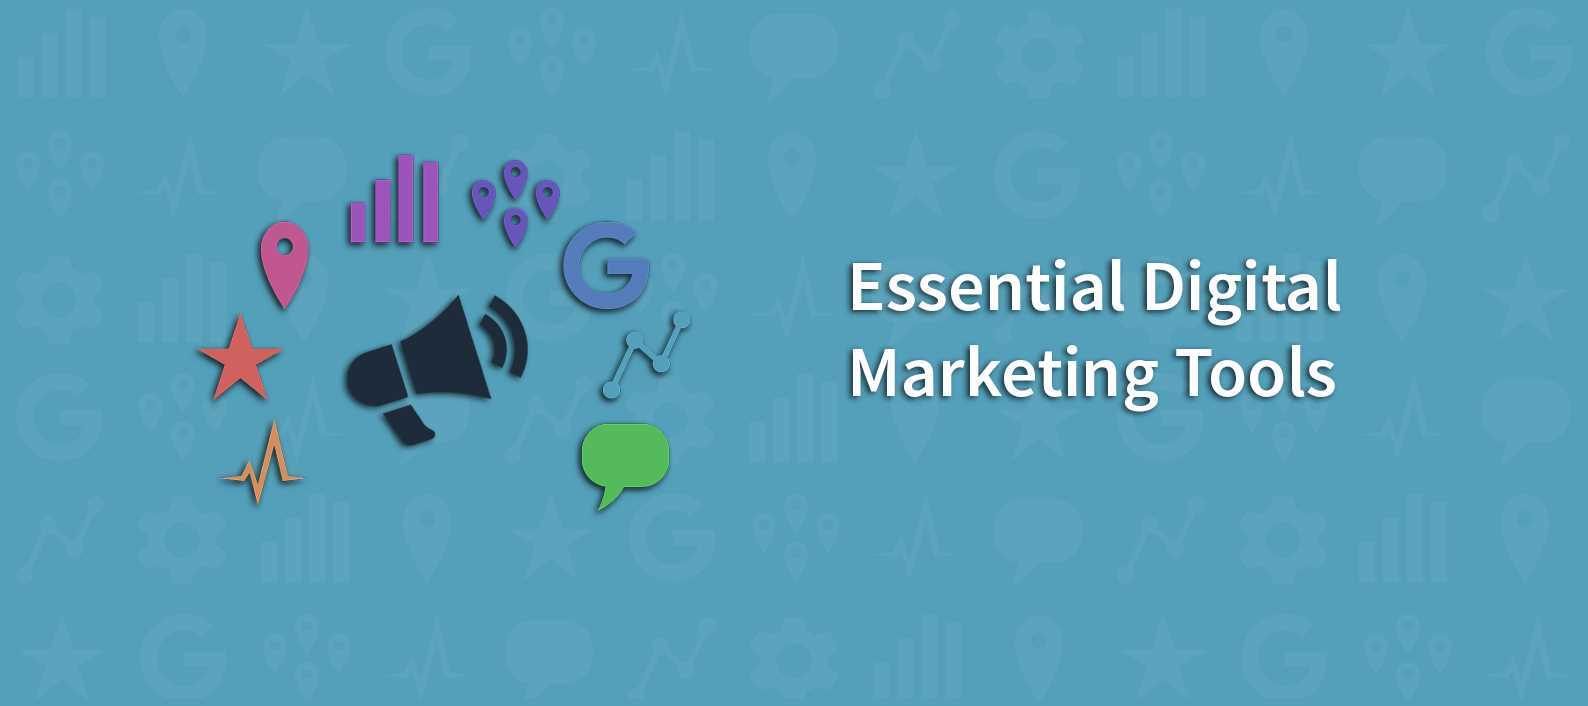 Do you know some working tools in digital marketing?